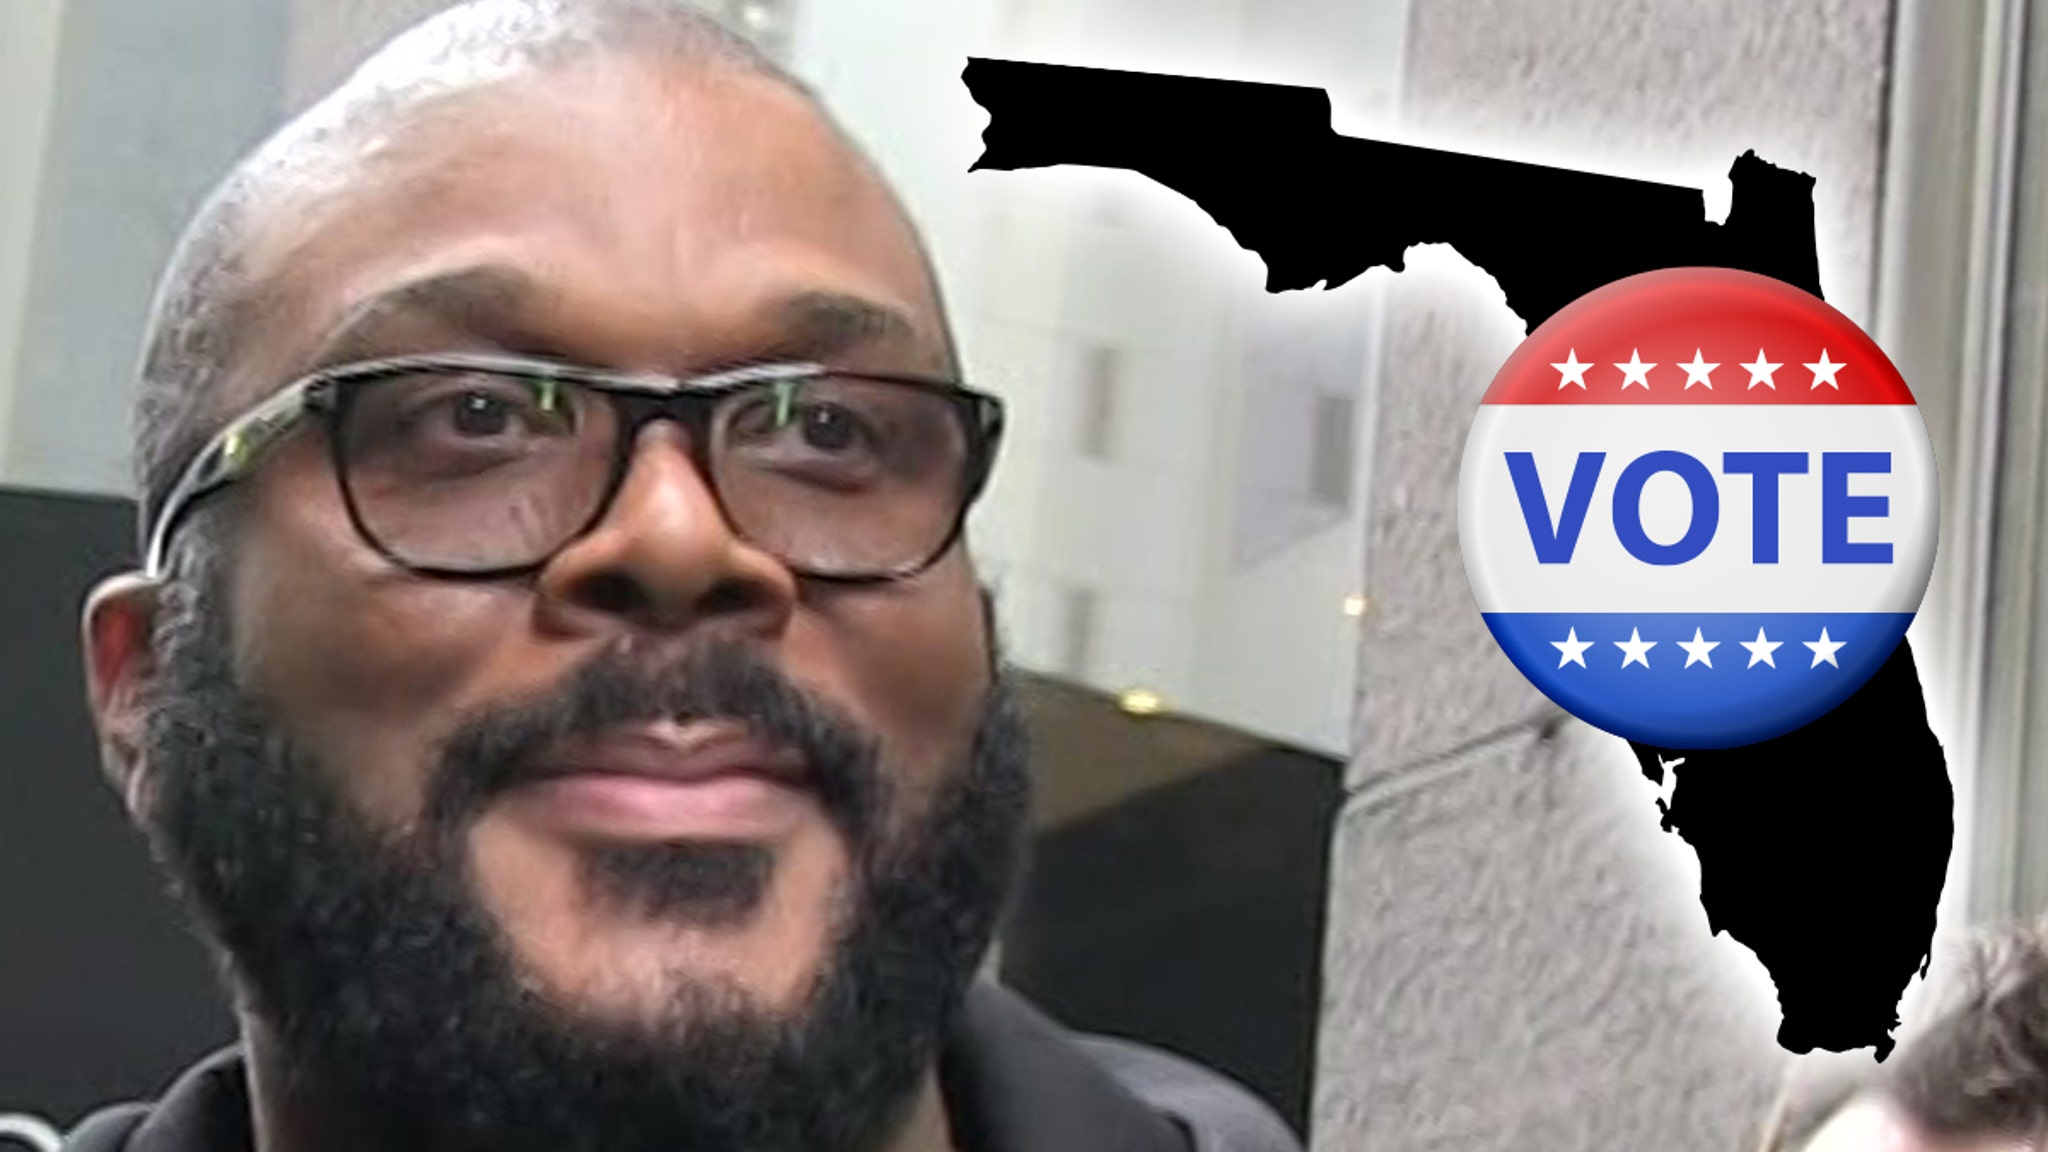 Tyler Perry Let's Rock the Vote in Florida ... $500k Campaign to Mobilize Black Voters